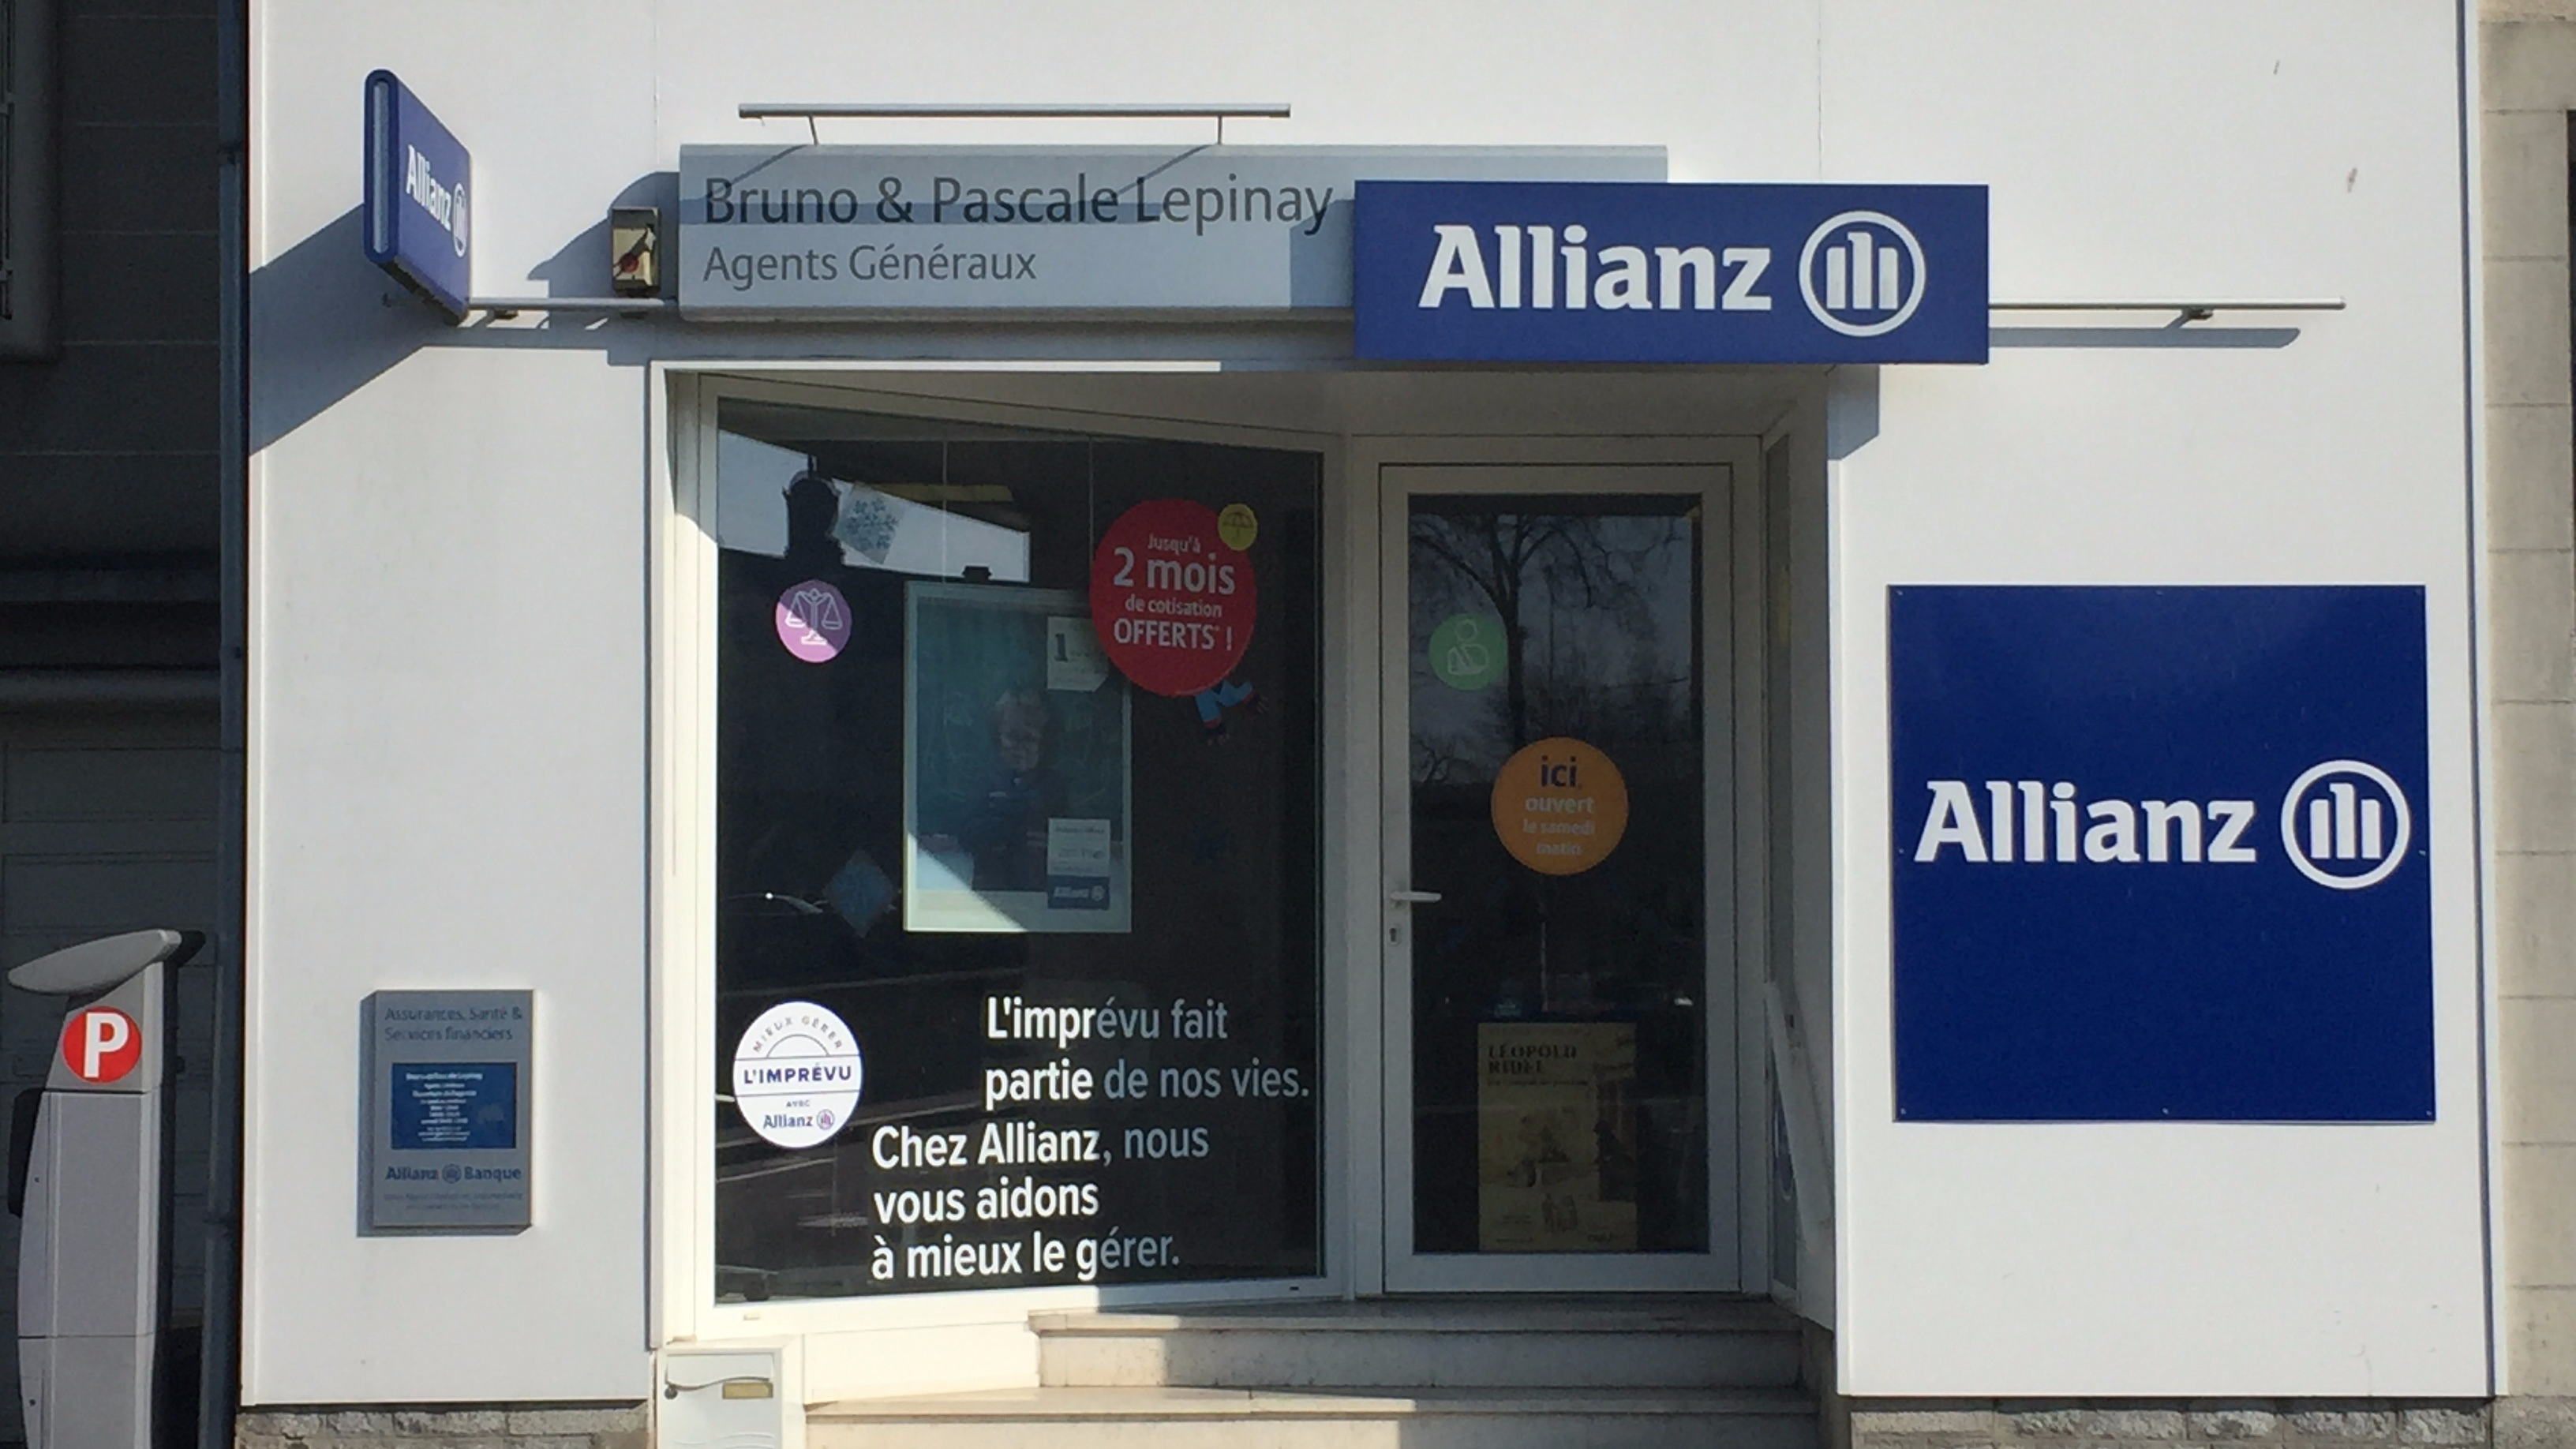 Allianz LAVAL - Bruno & Pascale LEPINAY